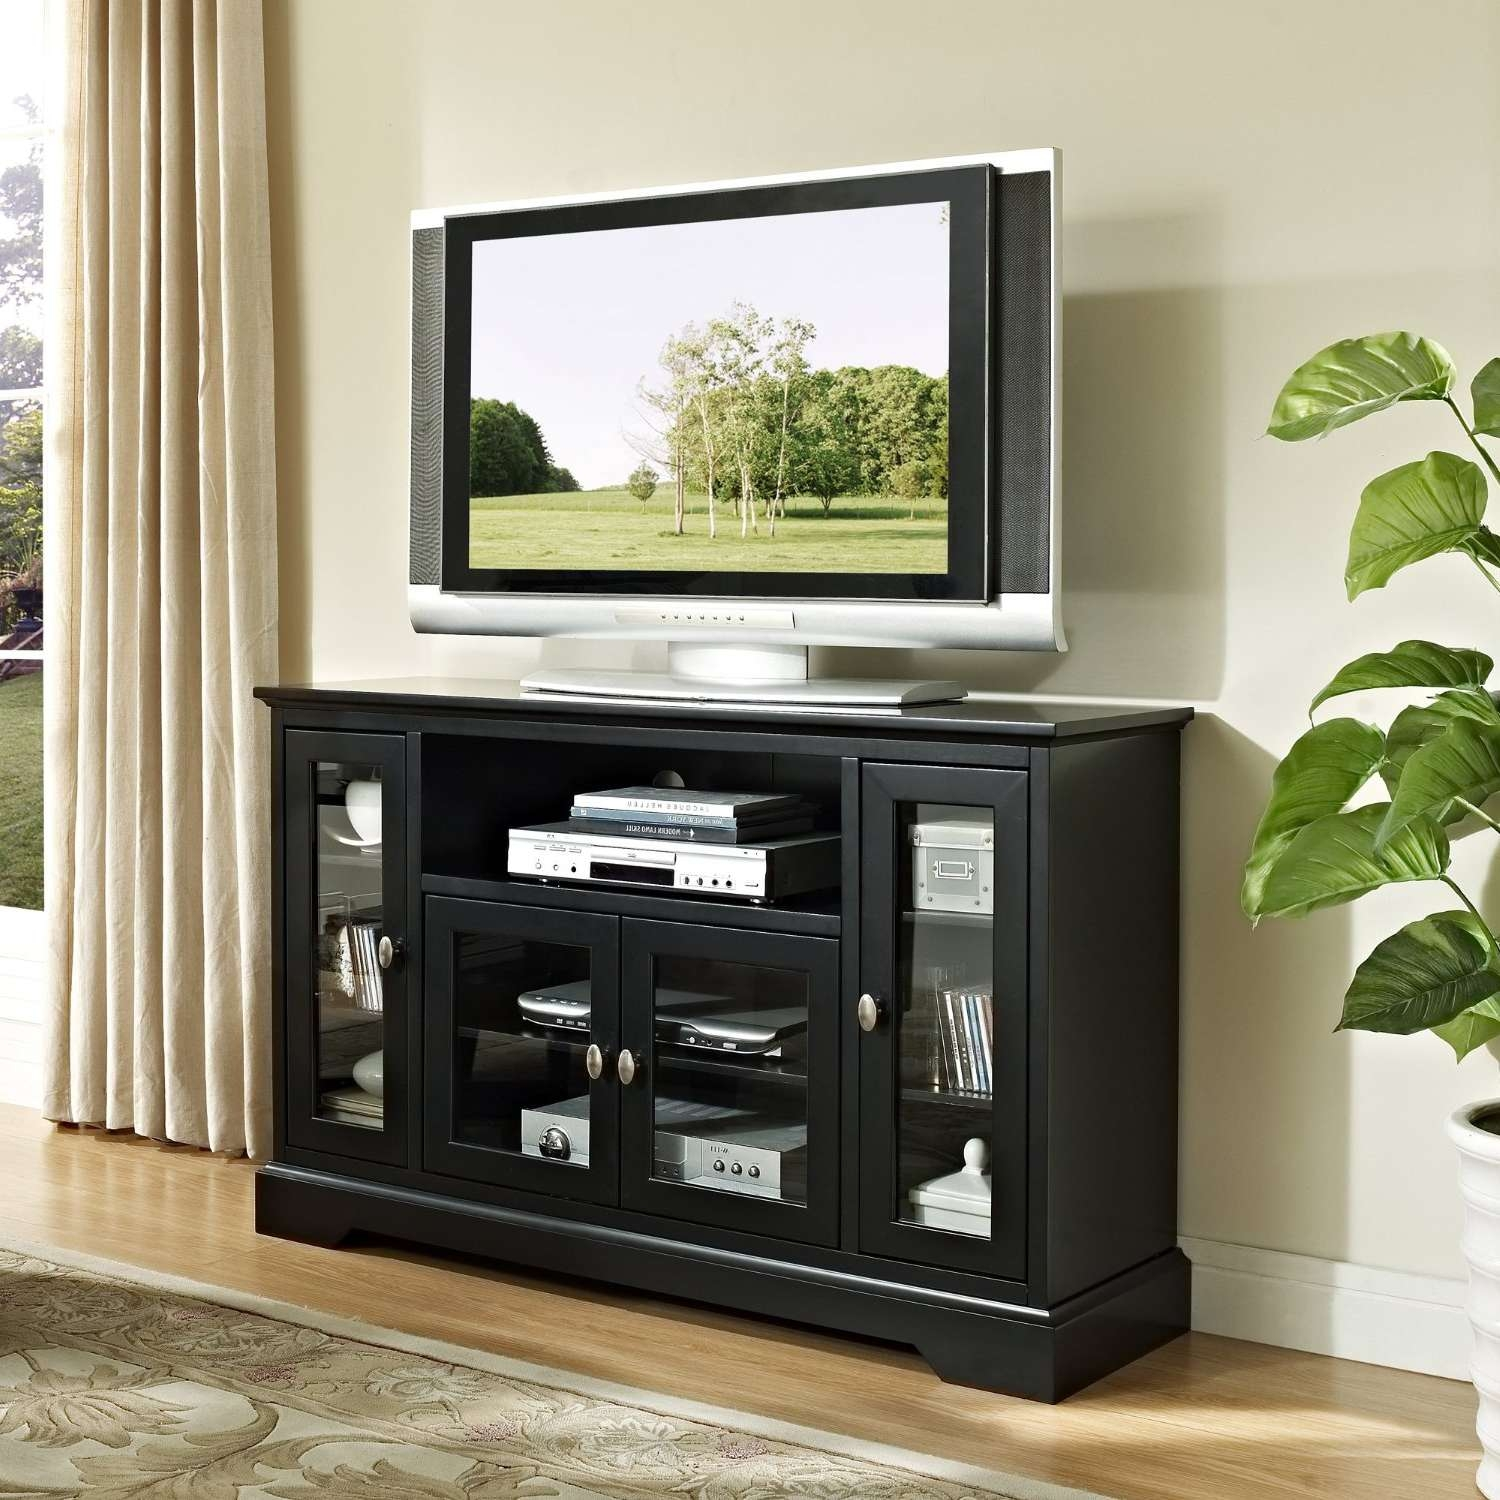 Modern Black Painted Mahogany Wood Media Stand With Glass Doors Of Pertaining To Tall Tv Stands For Flat Screen (View 2 of 15)